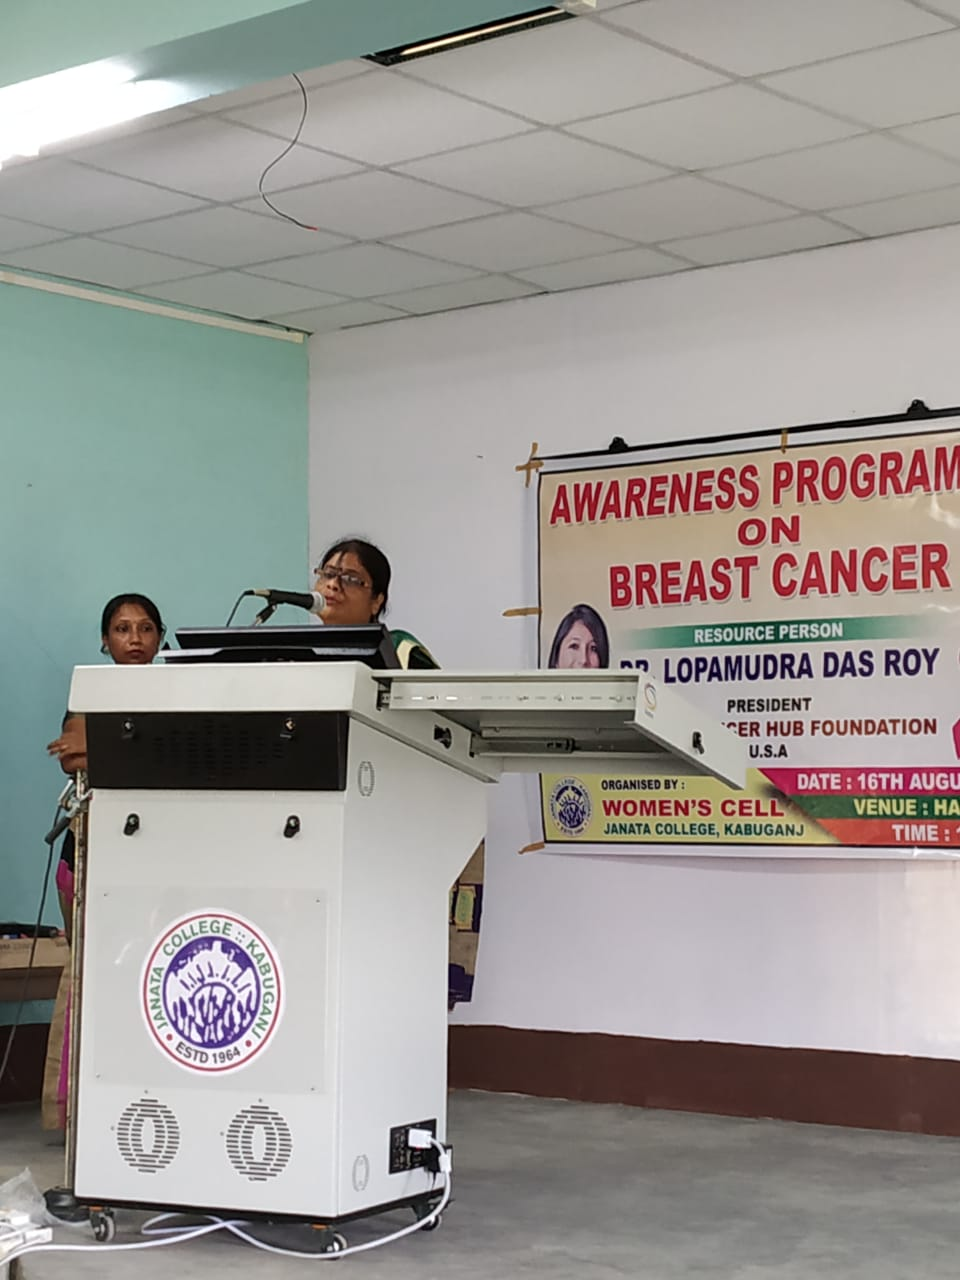 Sincerely thankful to Dr. Sima Ghosh, Associate Prof. & Head, Bengali Dept, for her enlightening words!